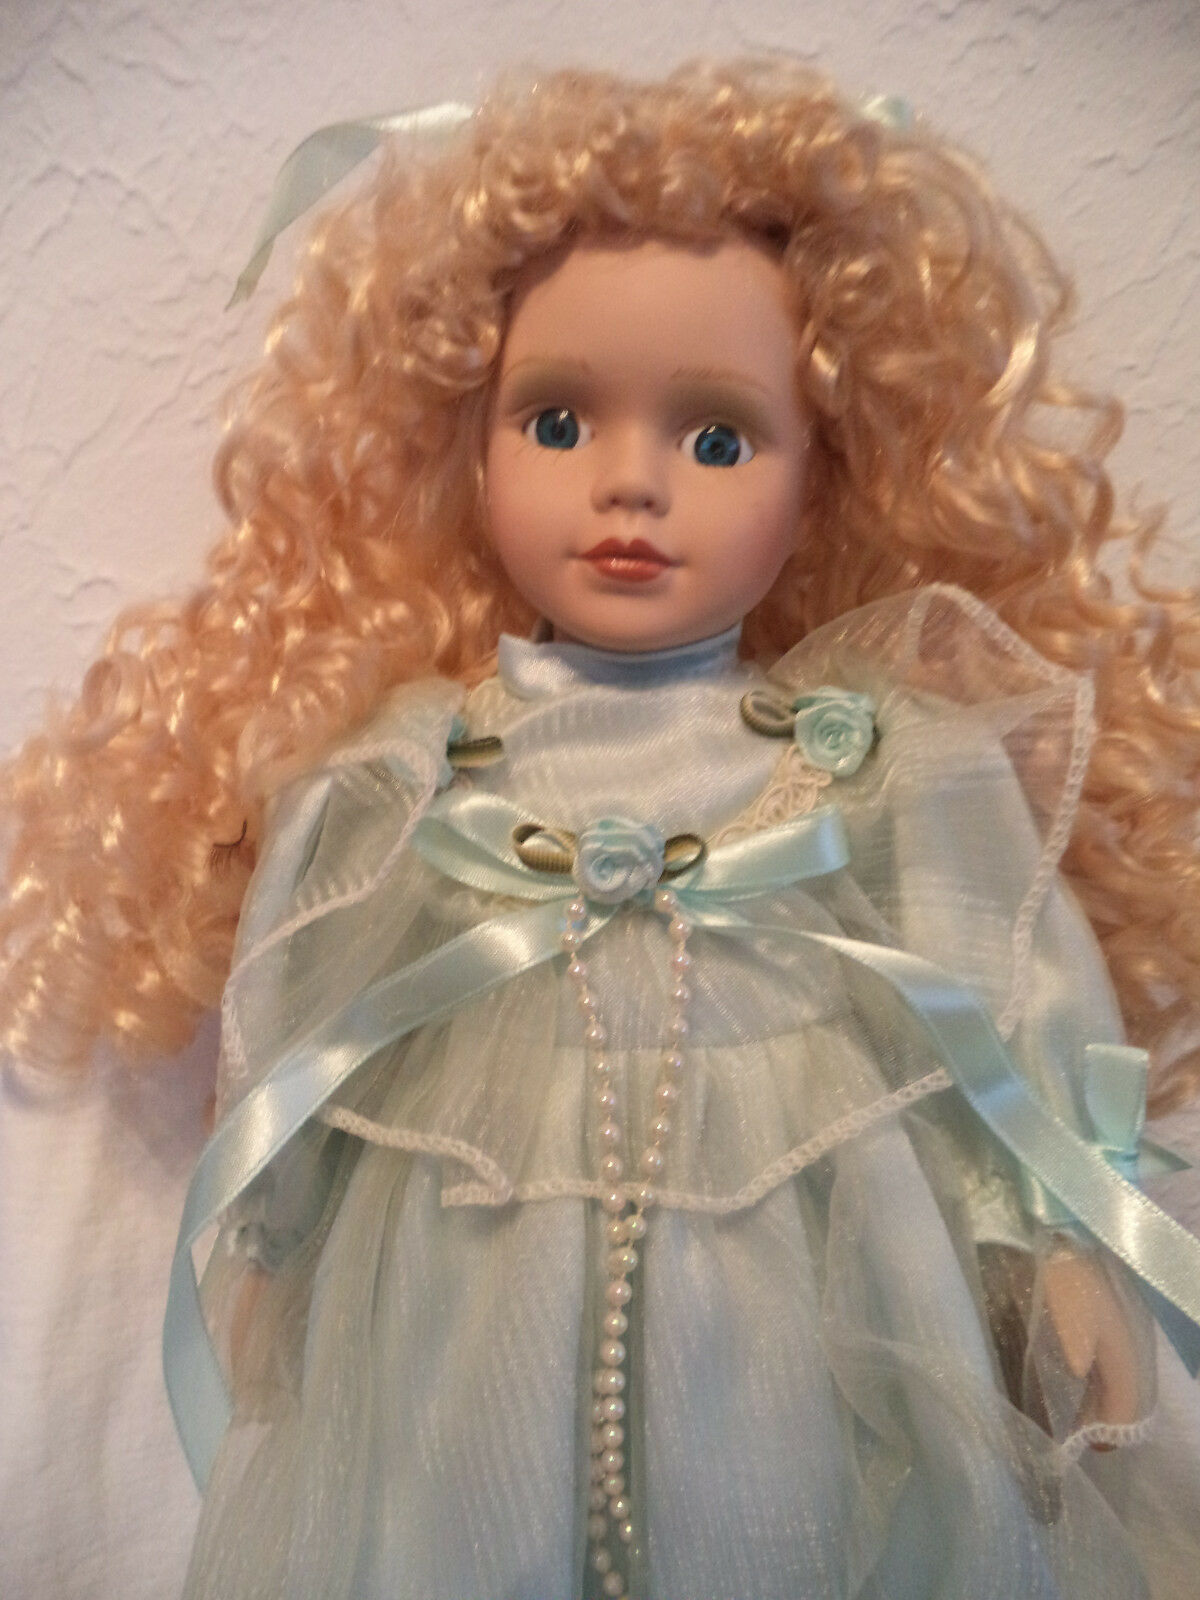 Vintage Porcelain Doll Angela Gift of Time Collection